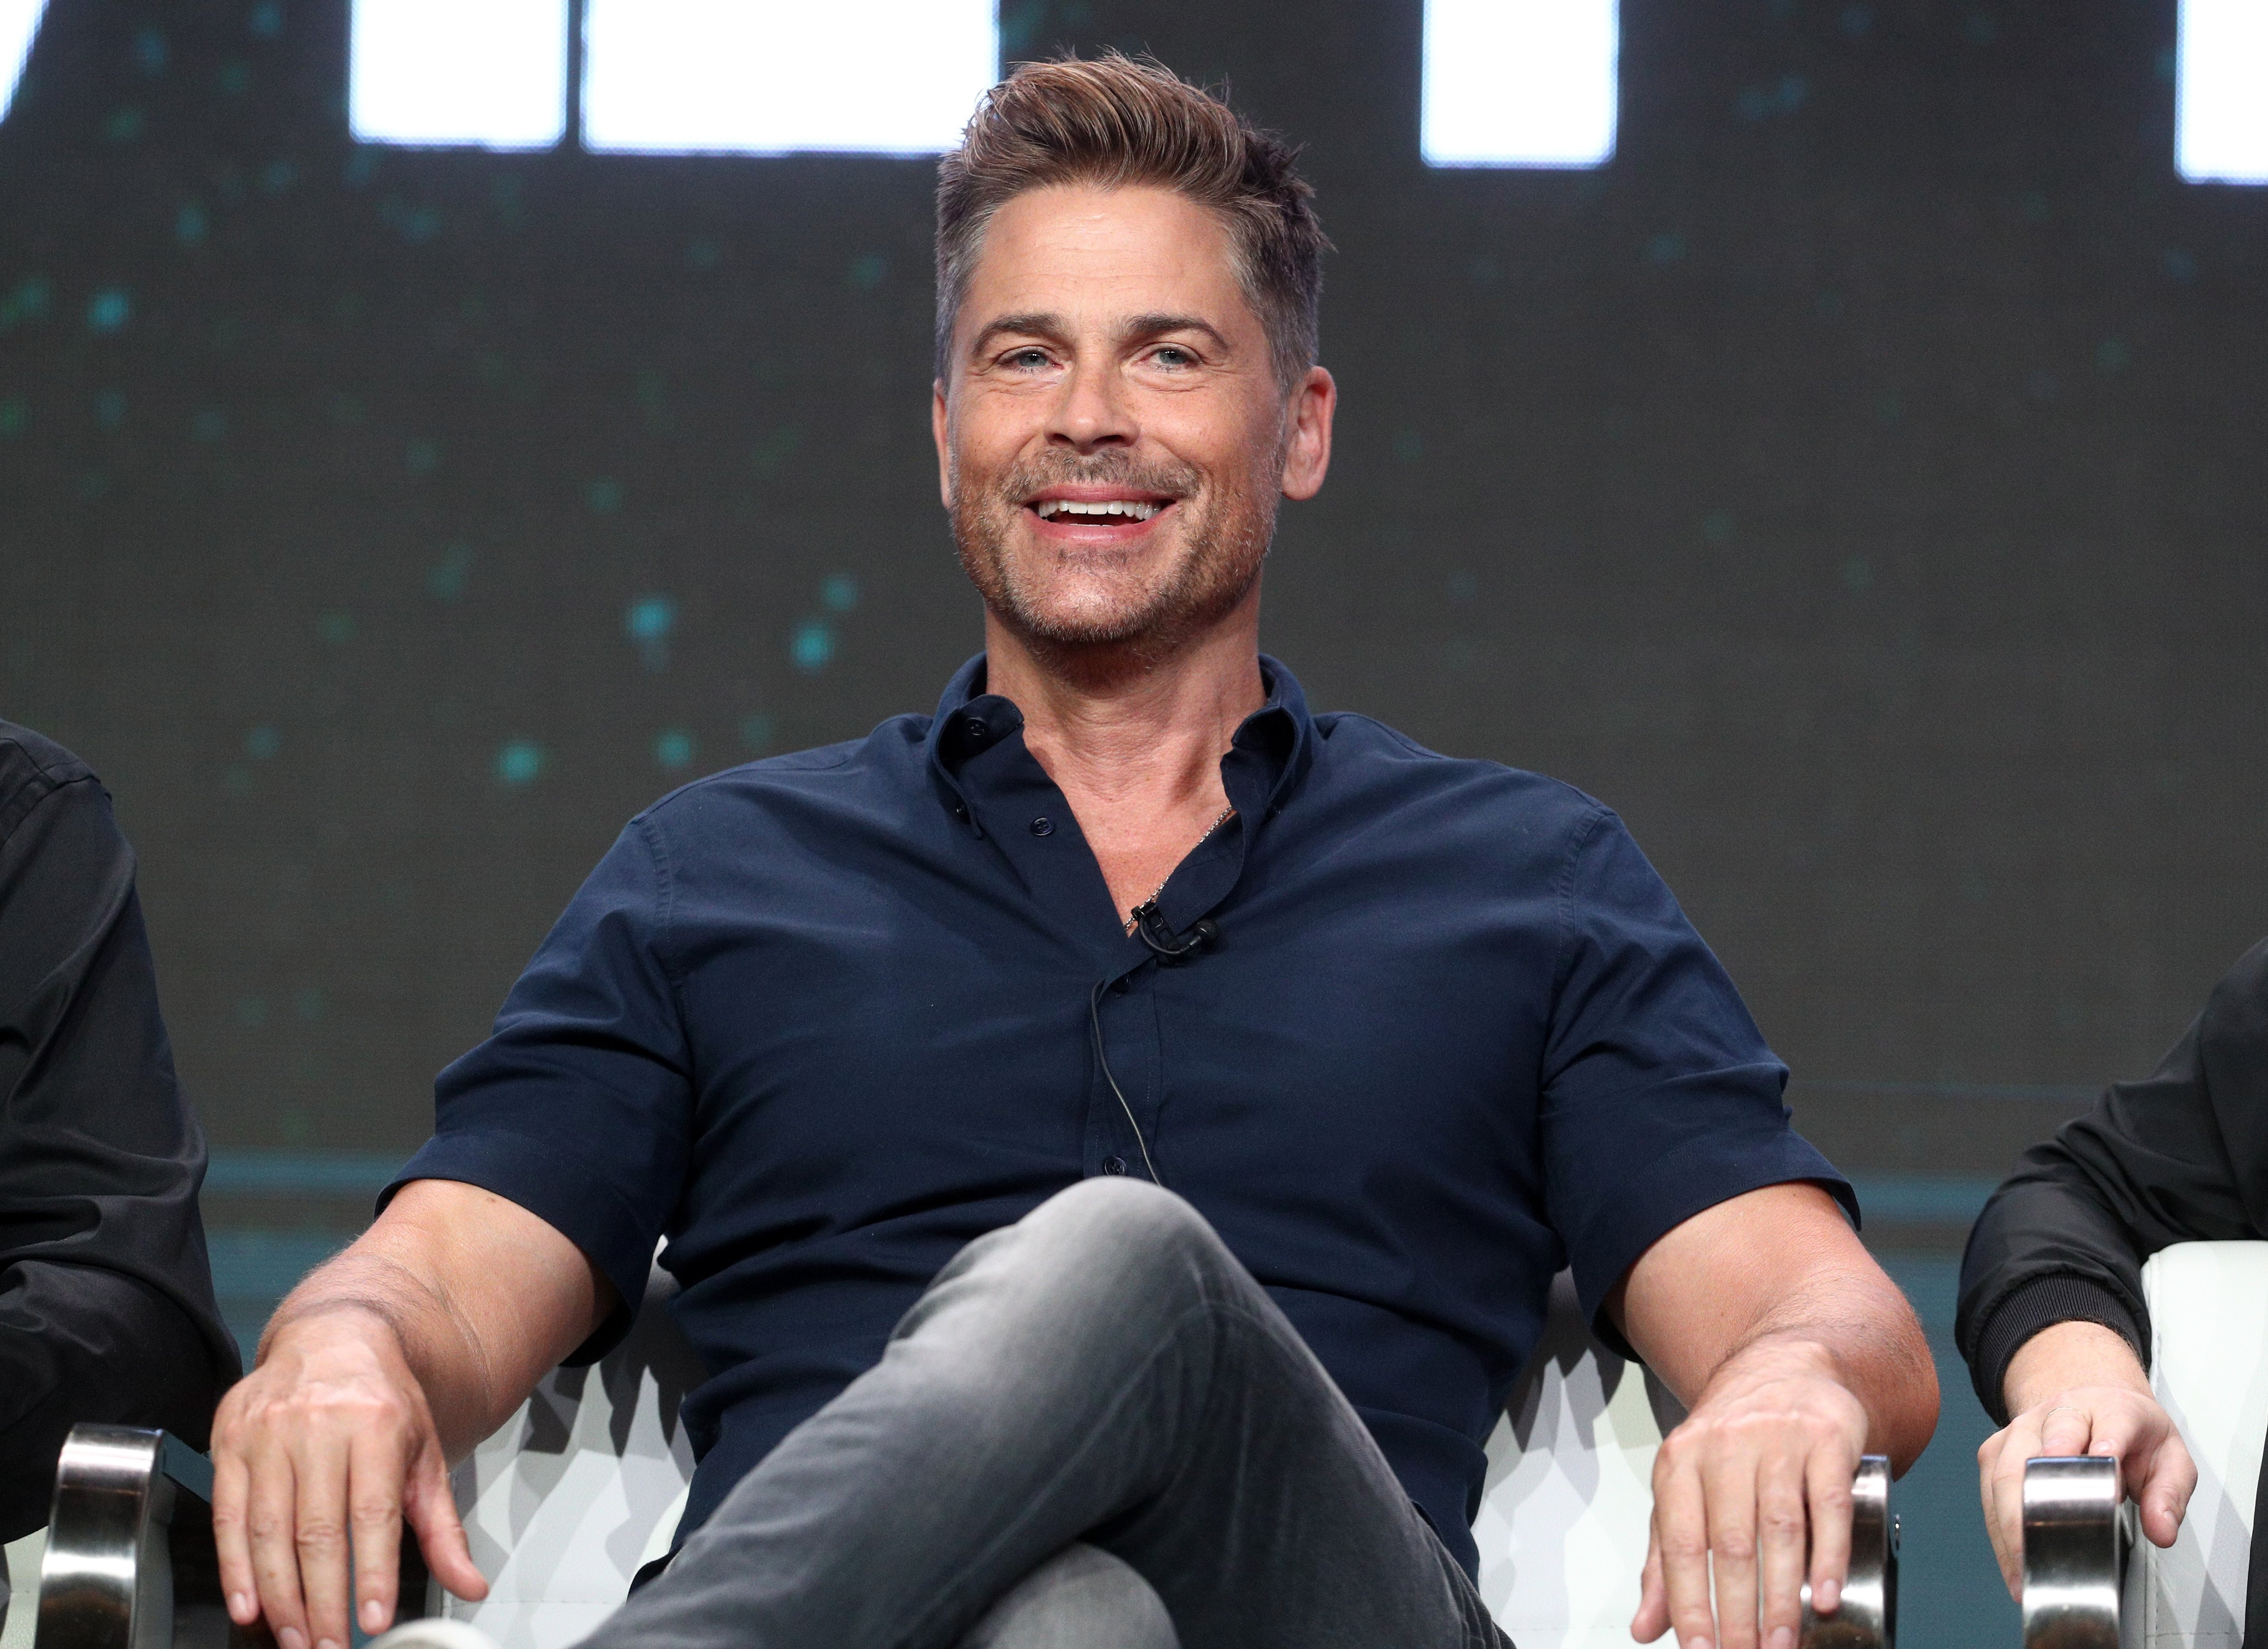 Rob Lowe speaks onstage during  the 2017 Summer Television Critics Association Press Tour on July 28, 2017, in Beverly Hills, California. | Source: Getty Images.